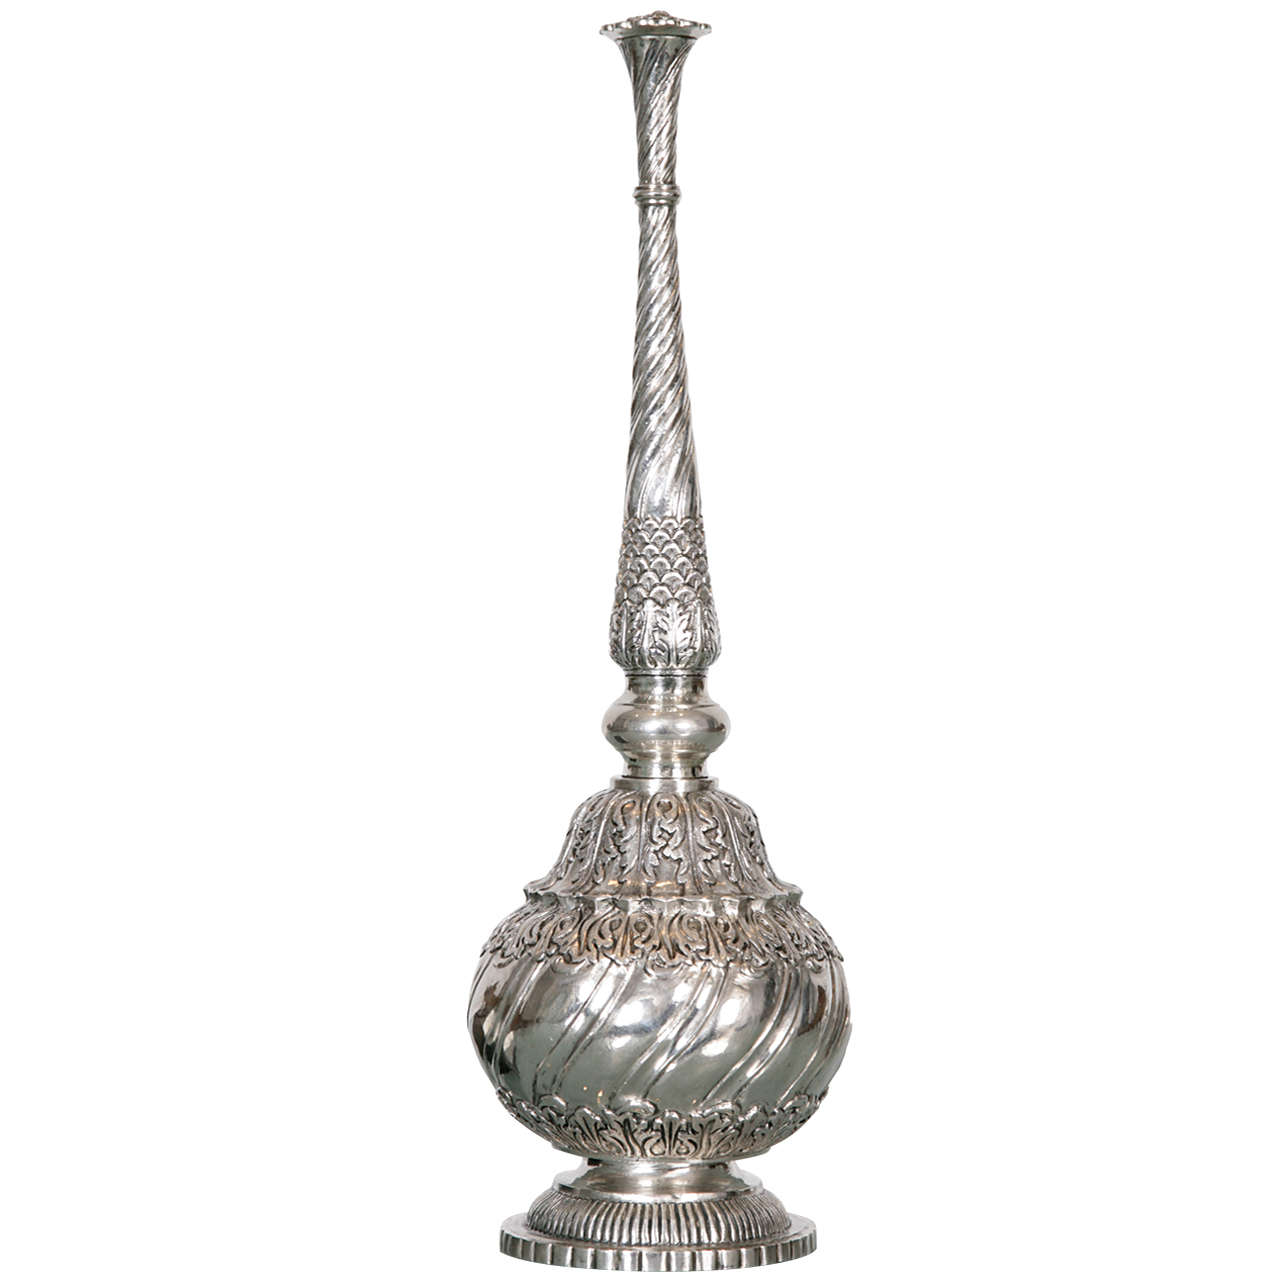 Repouse and engraved silver rosewater sprinkler at stdibs